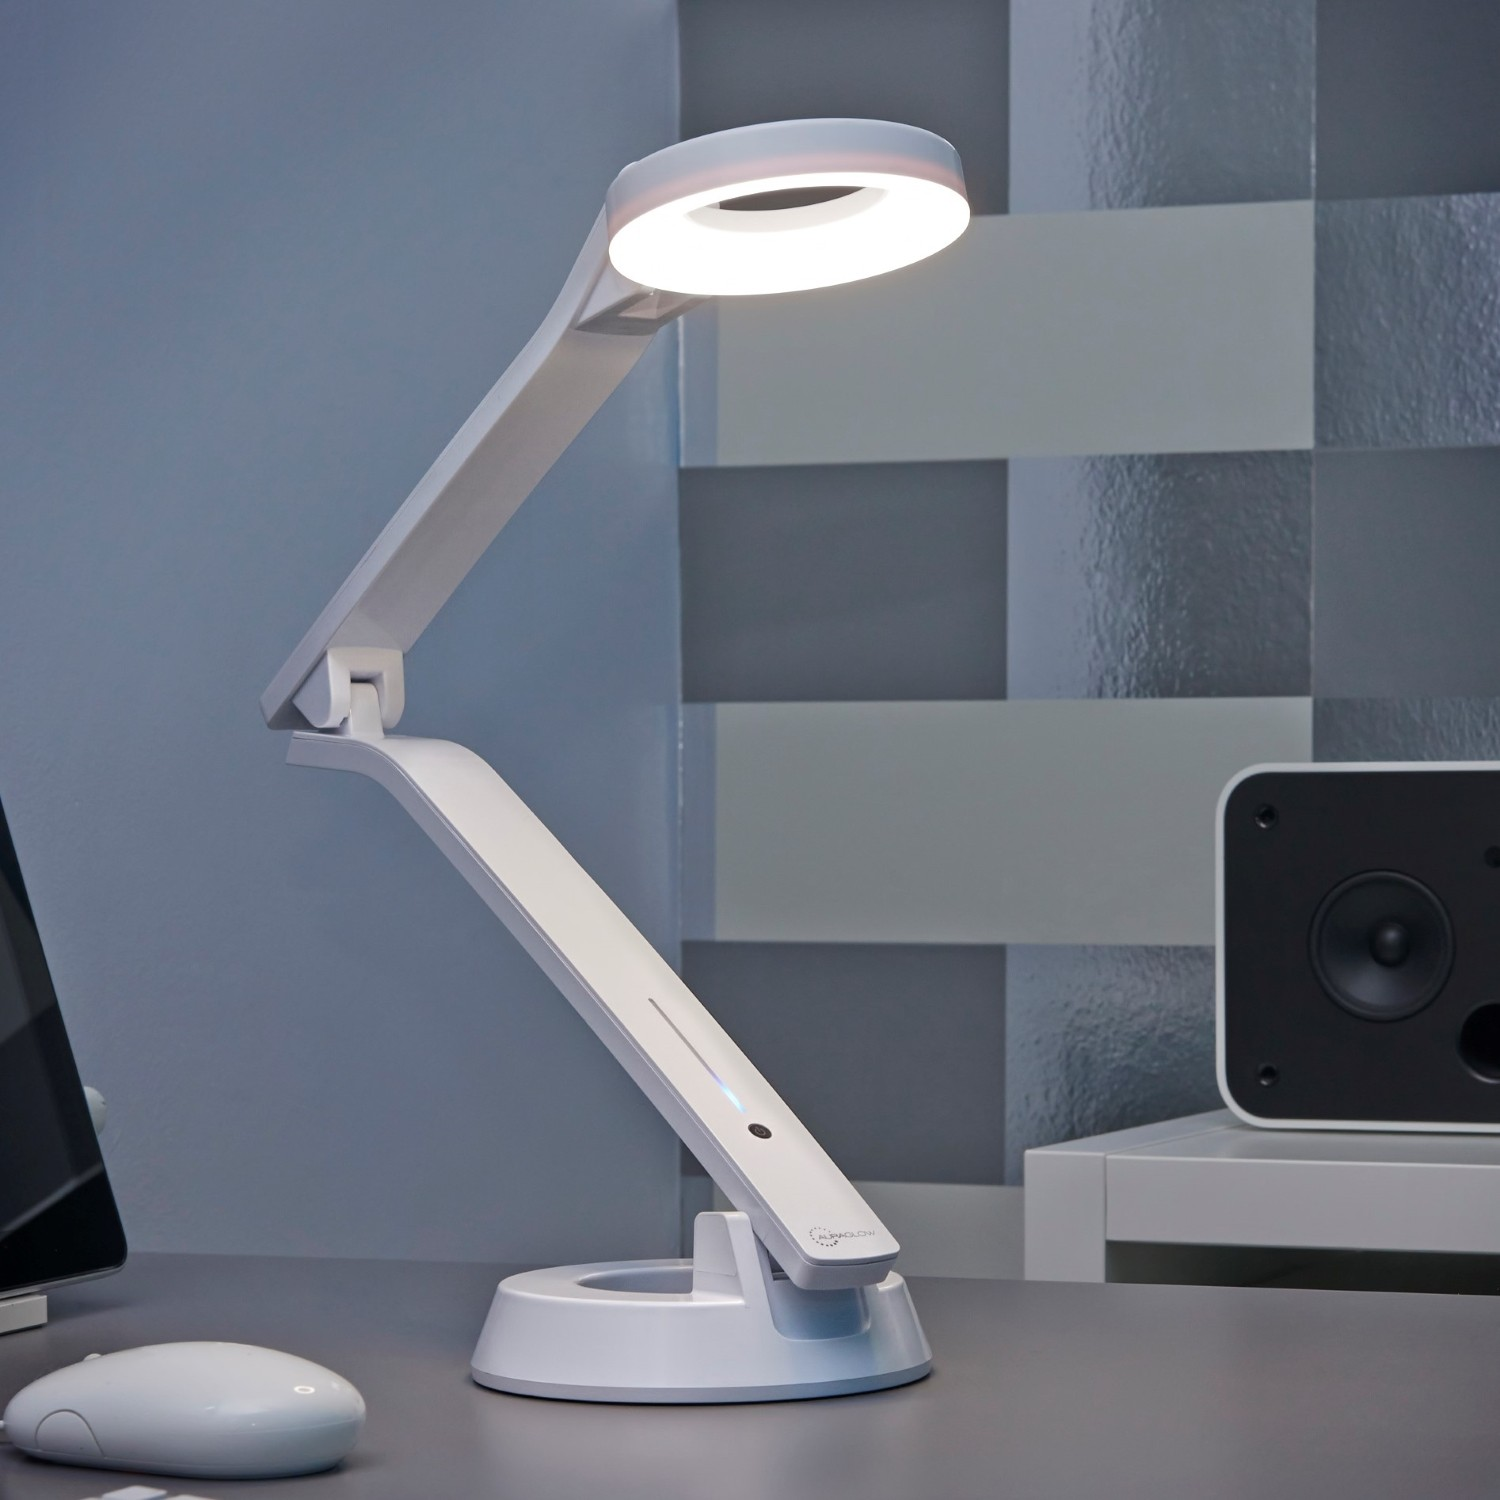 Desk Light Led Halo Desk Lamp For Office And Home Get The Light